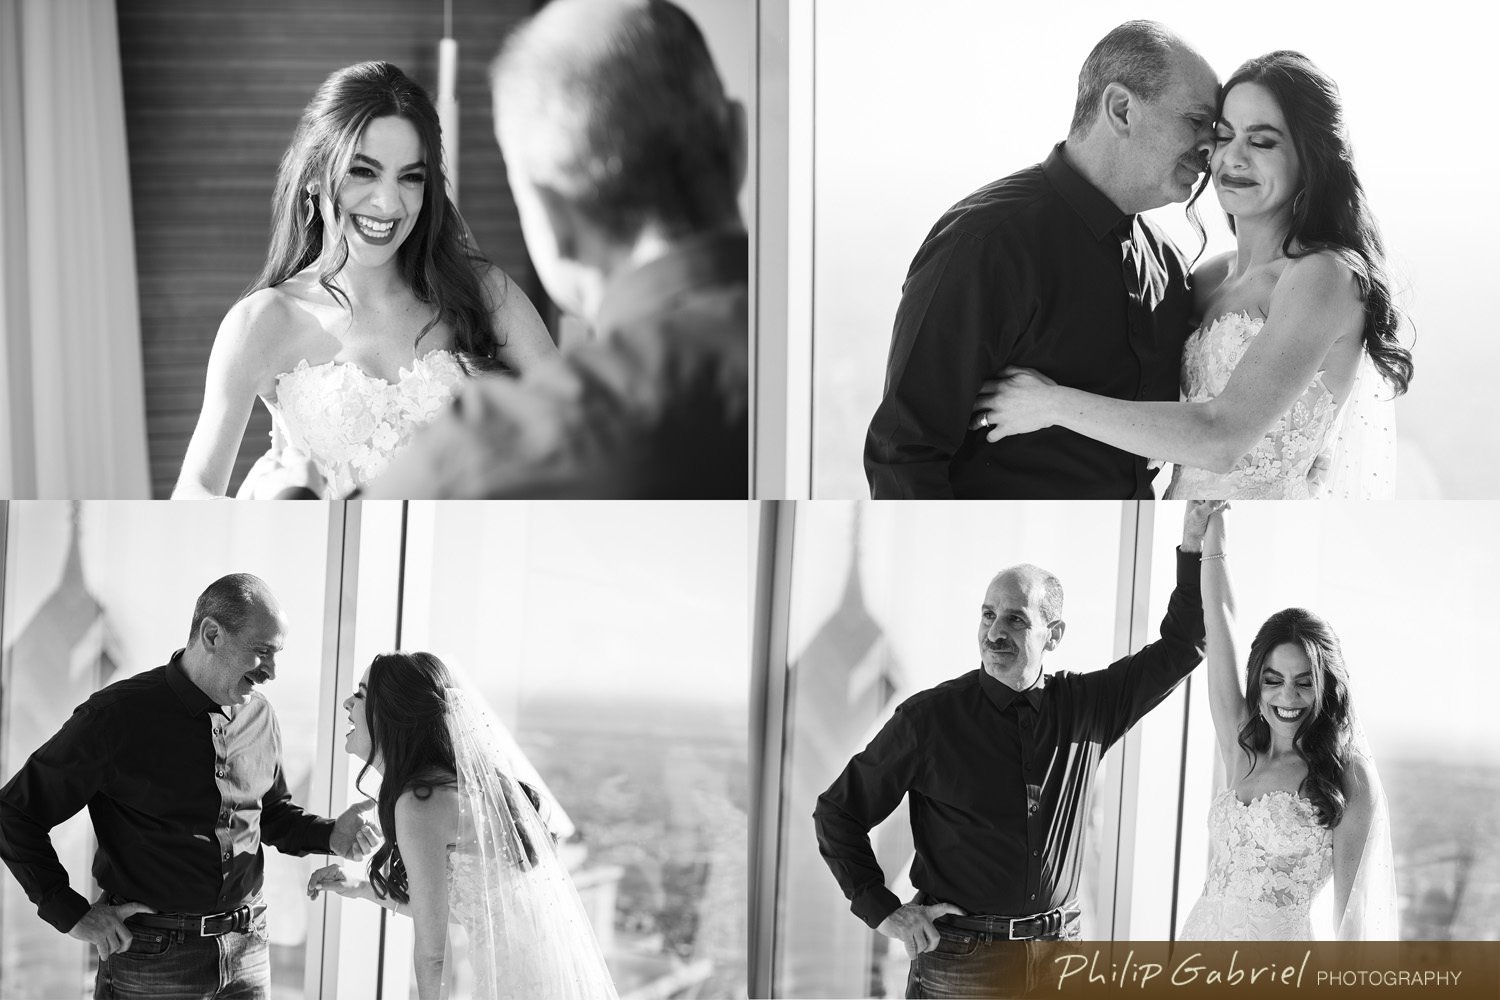 Wedding first looks with dad